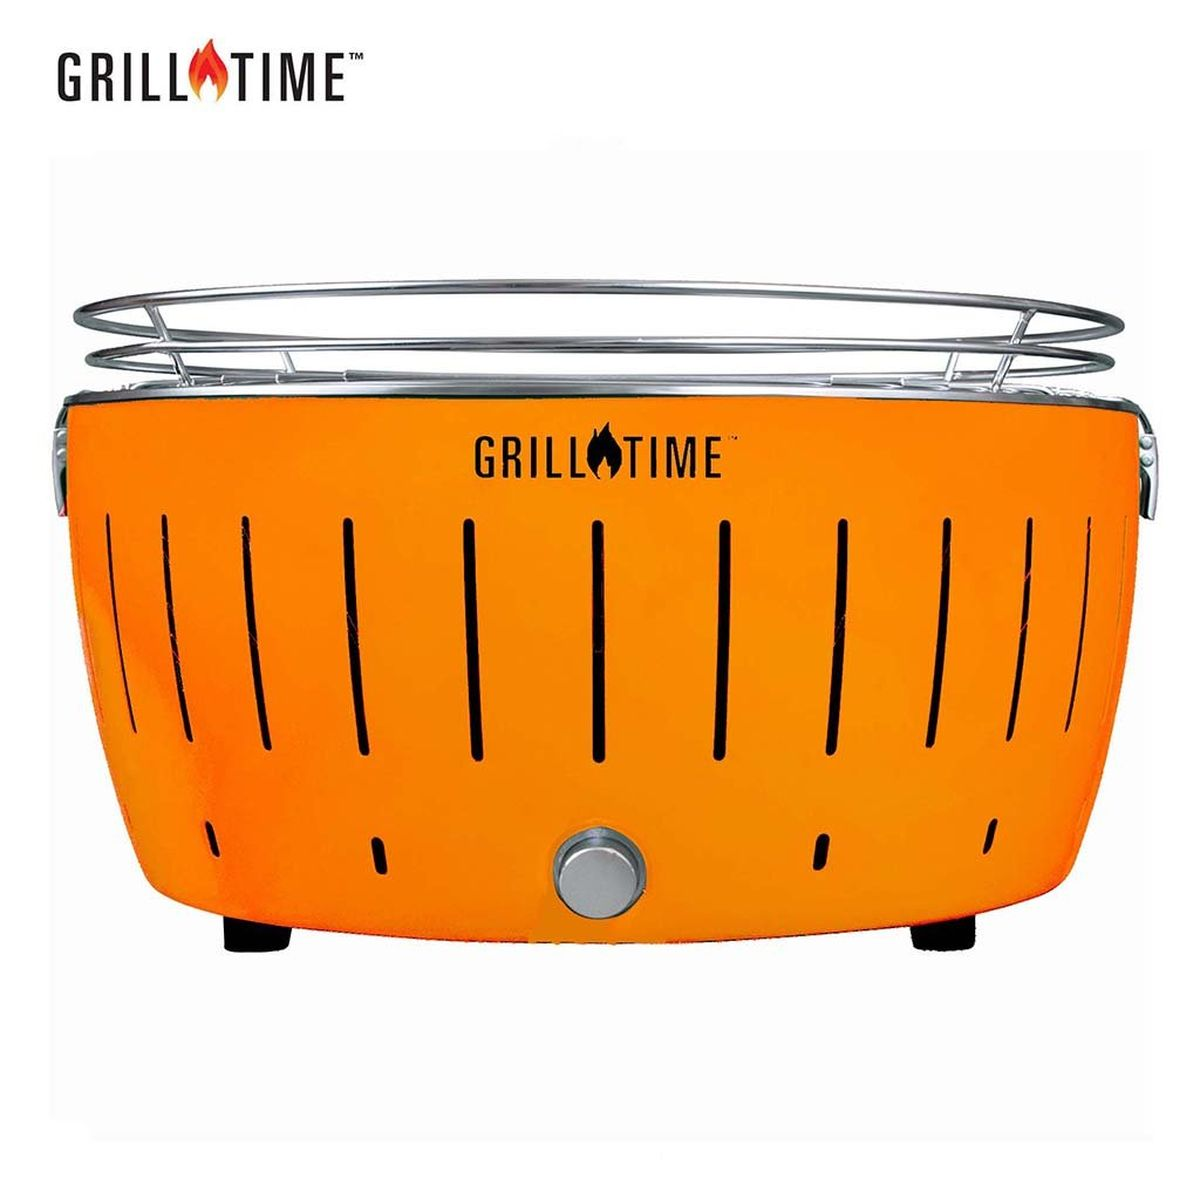 Grill Time Tailgater GTX XL Pack Portable Charcoal Grill - Orange